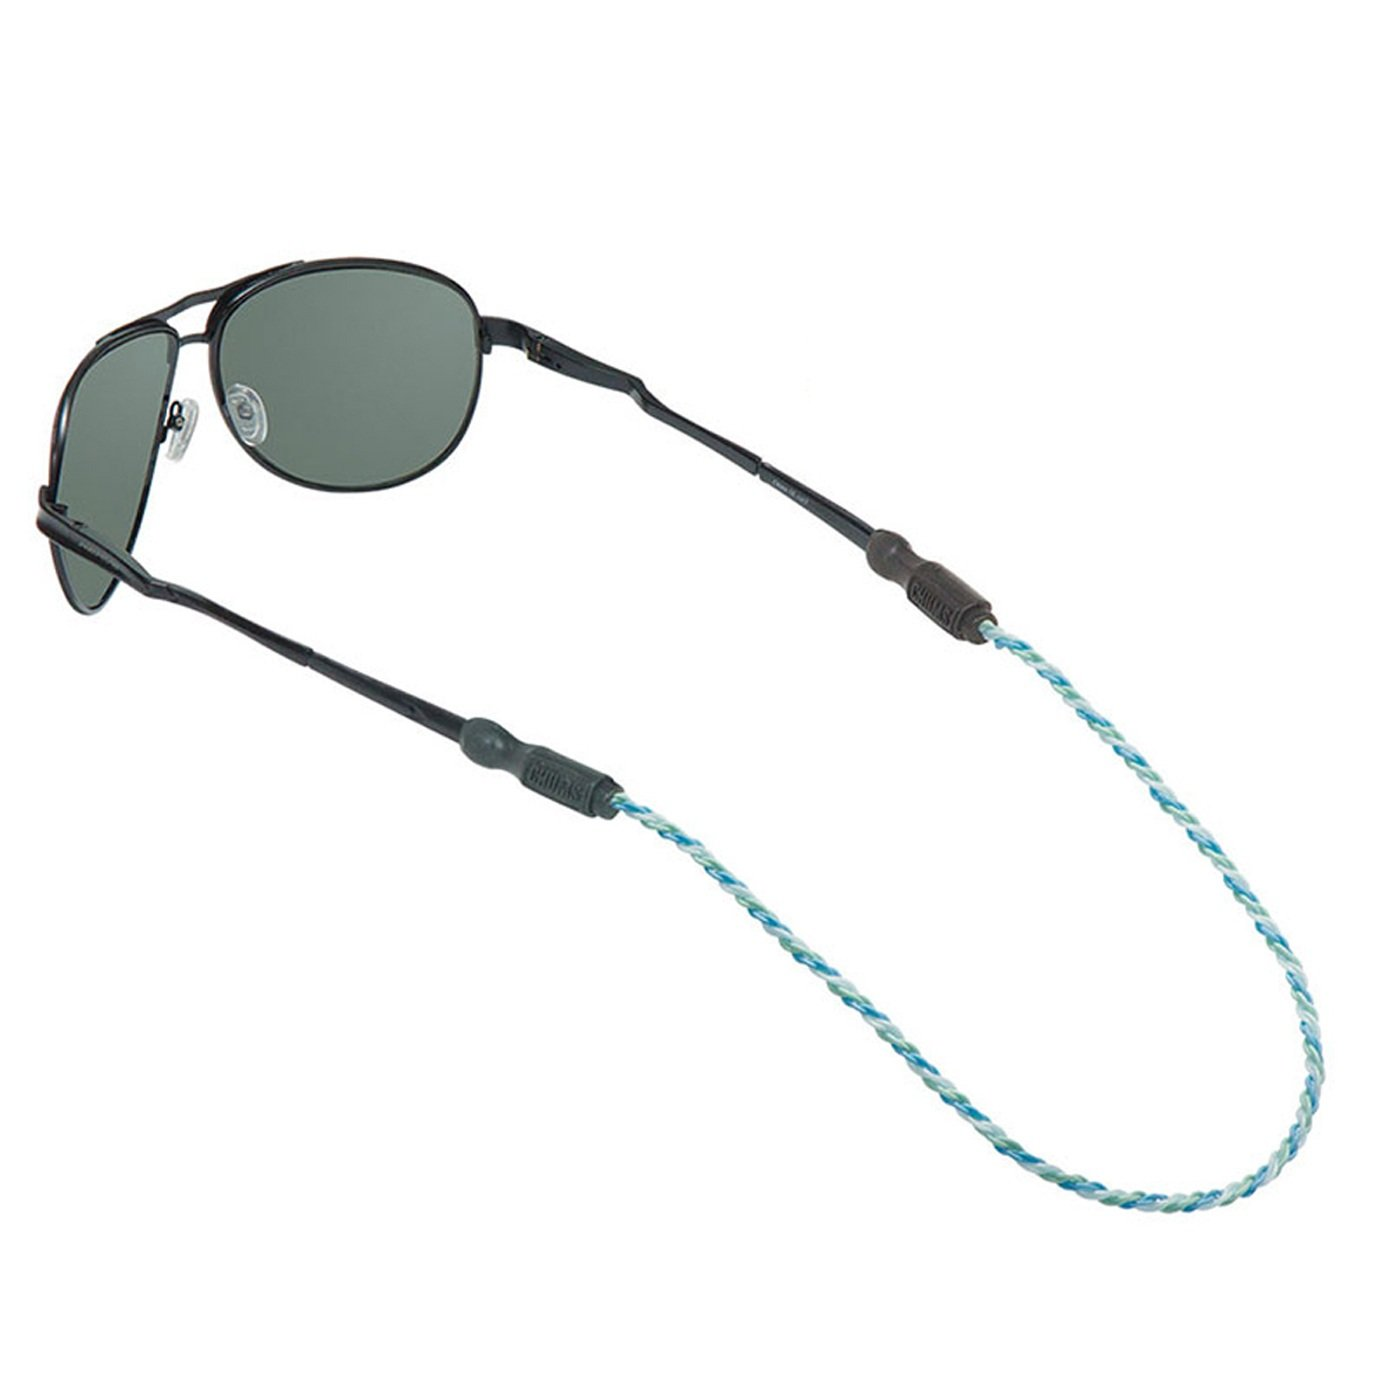 Chums Flyvines Neutral Eyewear Retainer